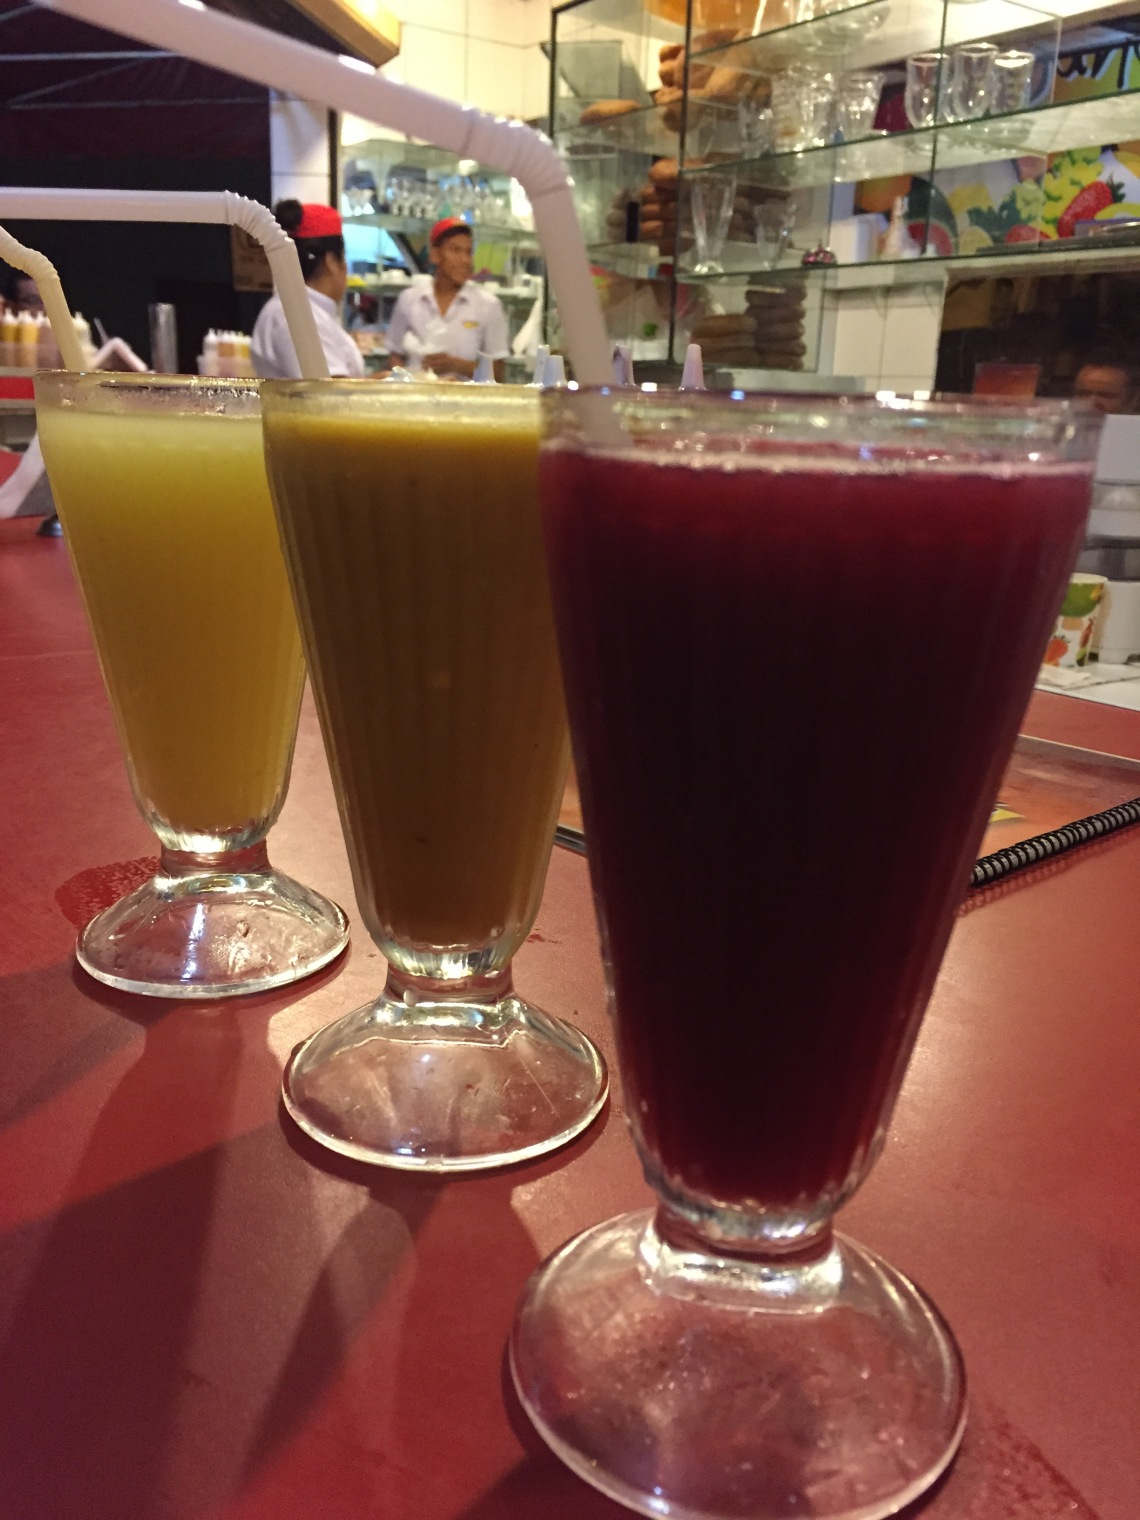 Fresh Fruit Juice in Peru